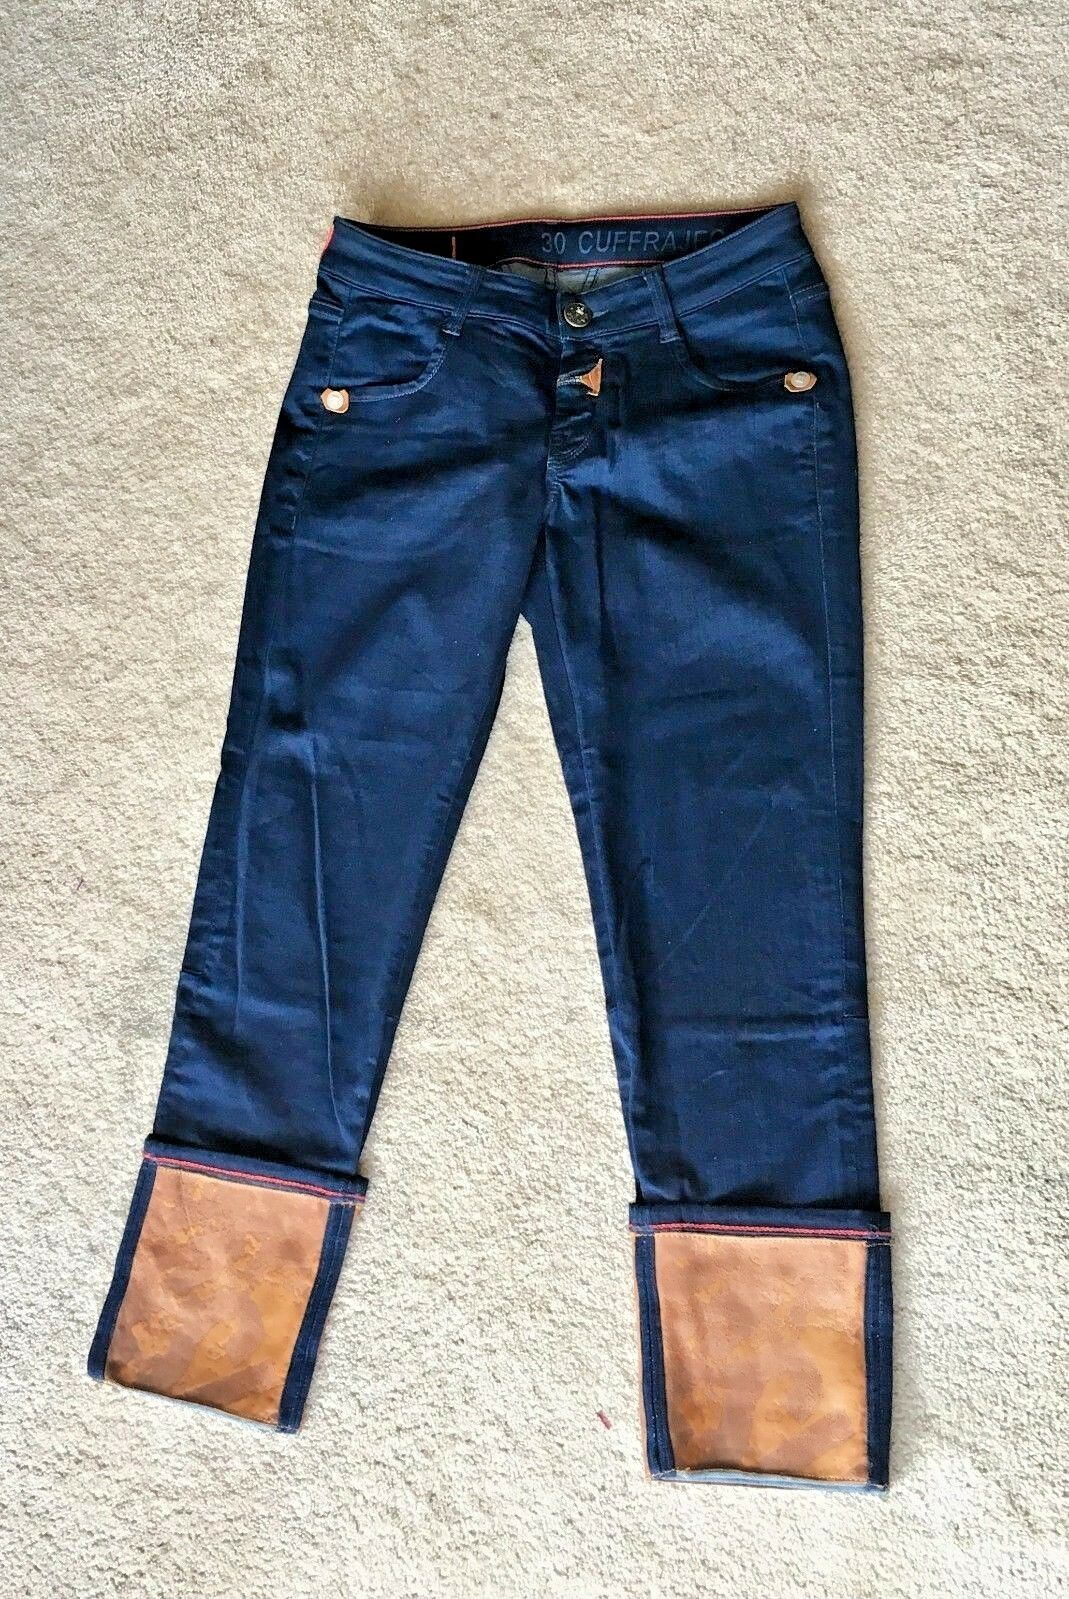 Marithe Francois Girbaud Size 30 Women's Leather Cuff Ankle Jeans NWOT  320